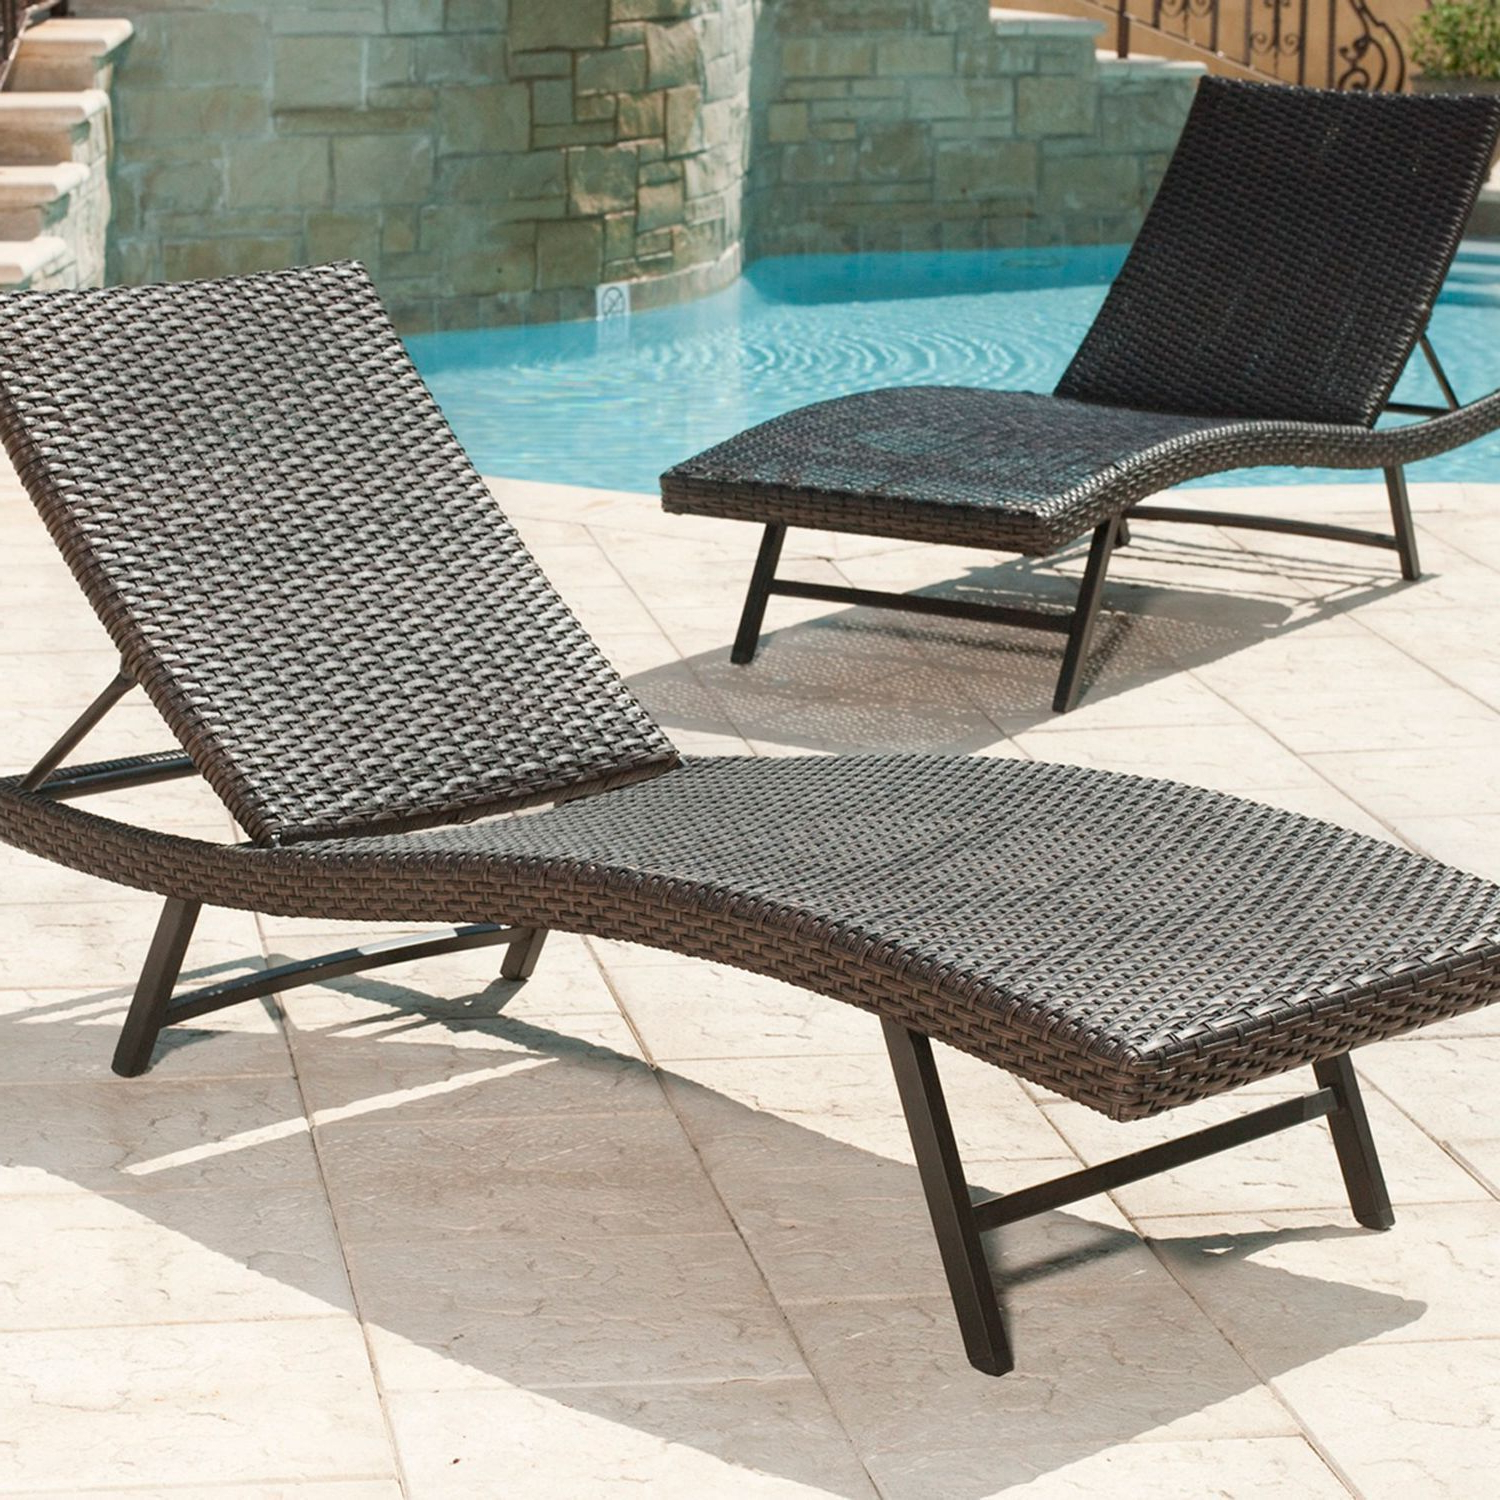 Resin Wicker Multi Position Double Patio Chaise Lounges With 2020 Member's Mark Heritage Chaise Lounges, 2 Pack – Sam's Club (View 25 of 25)